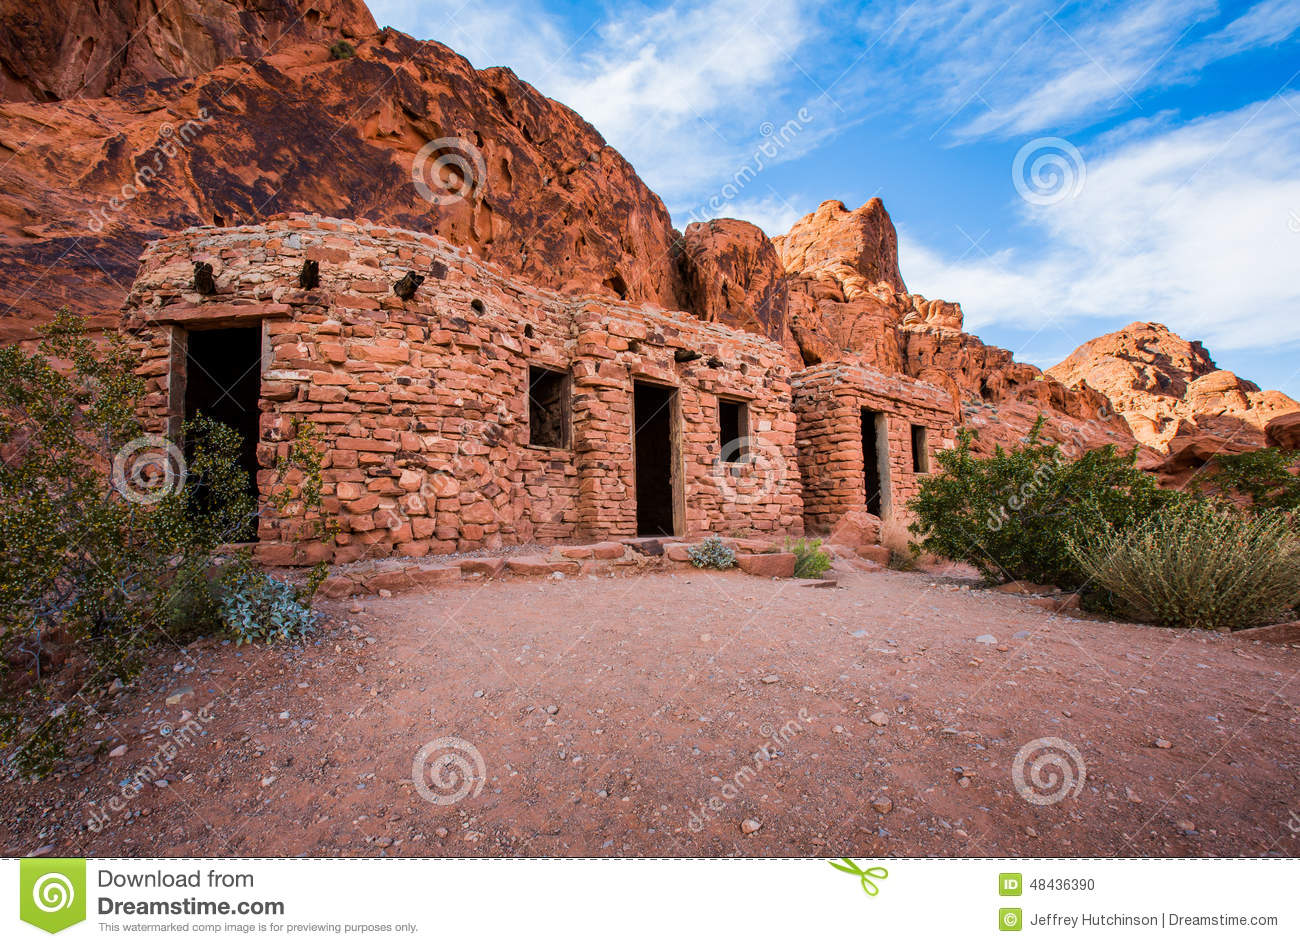 Red rocks used to form shelter in desert